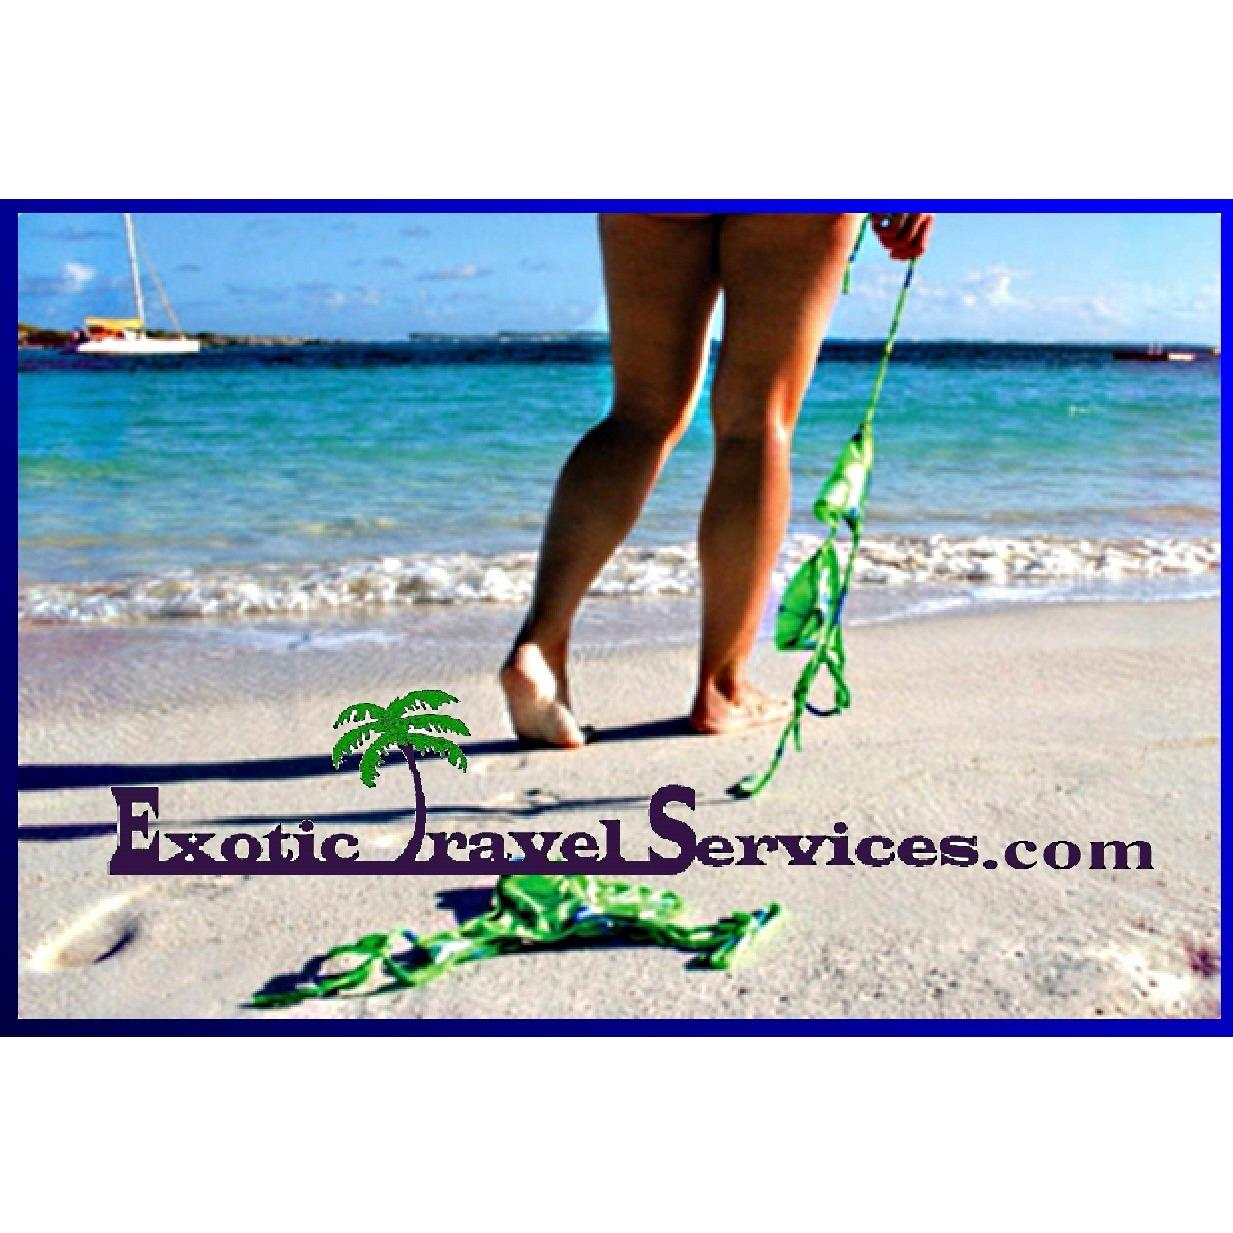 Exotic Travel Services